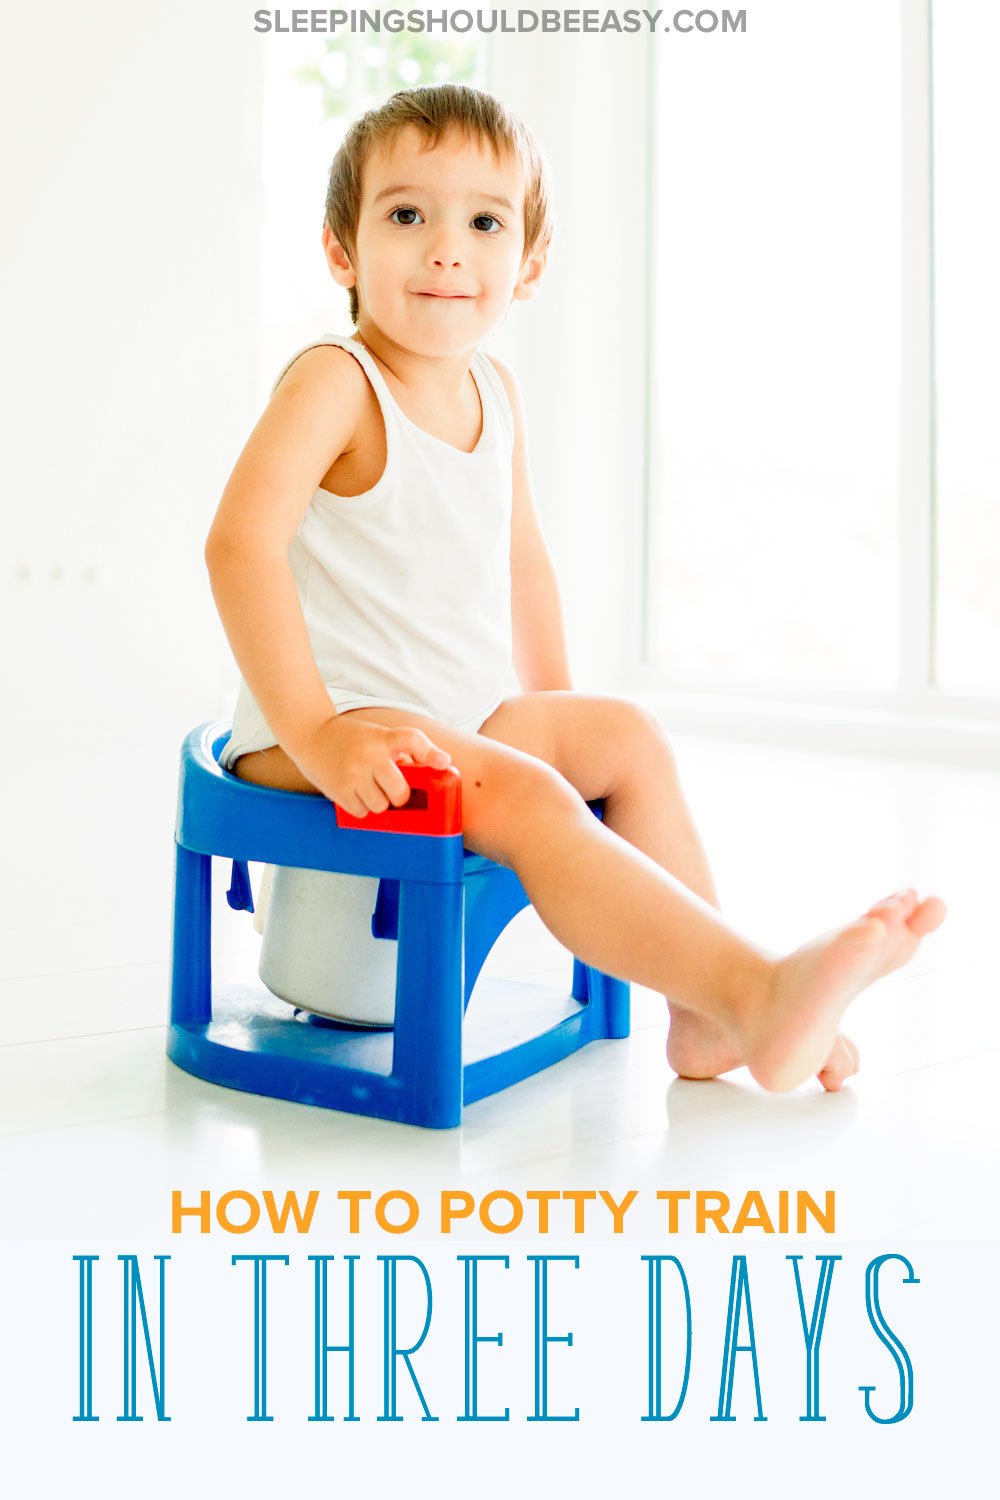 Tired of diapers, rewards that don't work and drawn-out potty training that take forever? Learn about potty training in three days with these instructions!